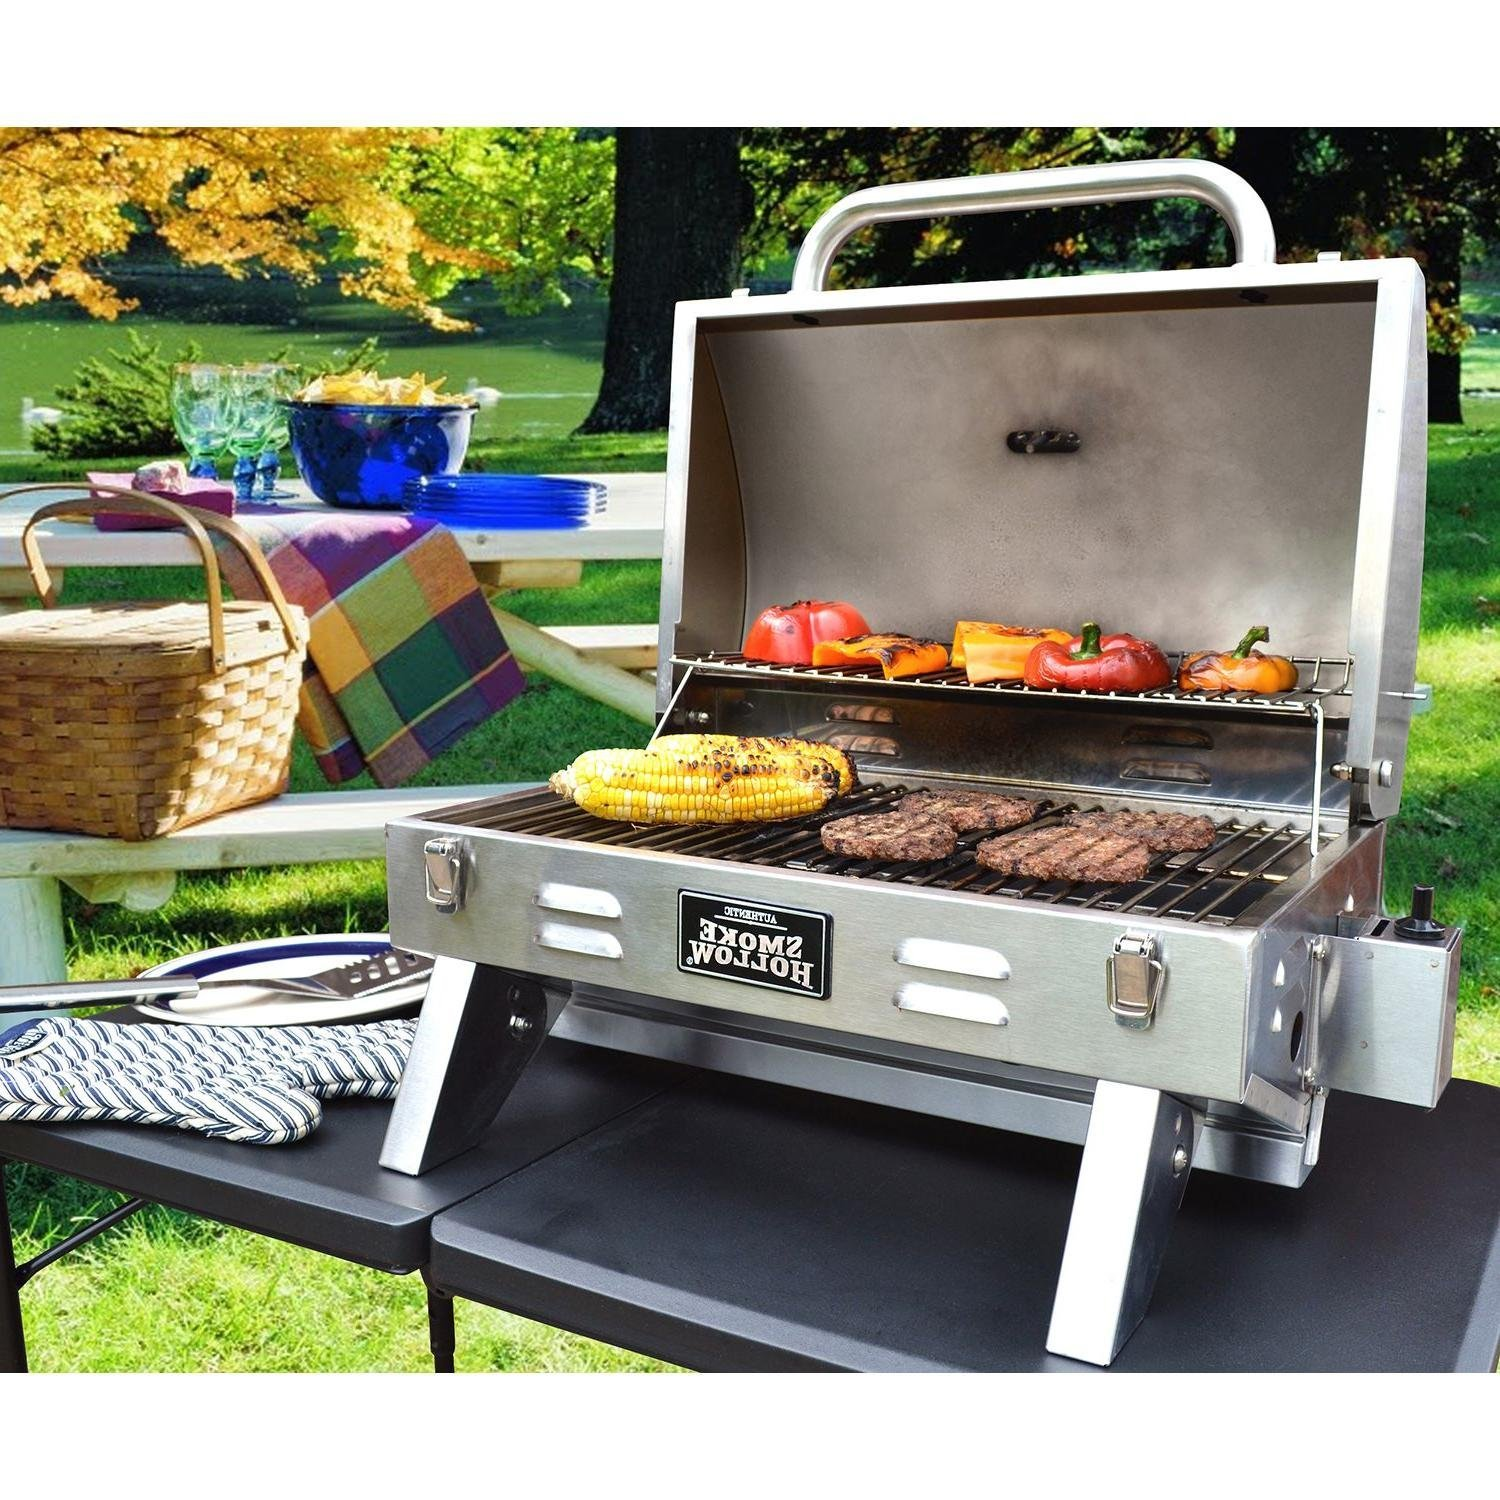 Infrared Gas Grill,Best Tabletop Gas Grill,Tabletop Propane Grill,Barbecue Grills,Outdoor Gas Grills,Picnic Grill.